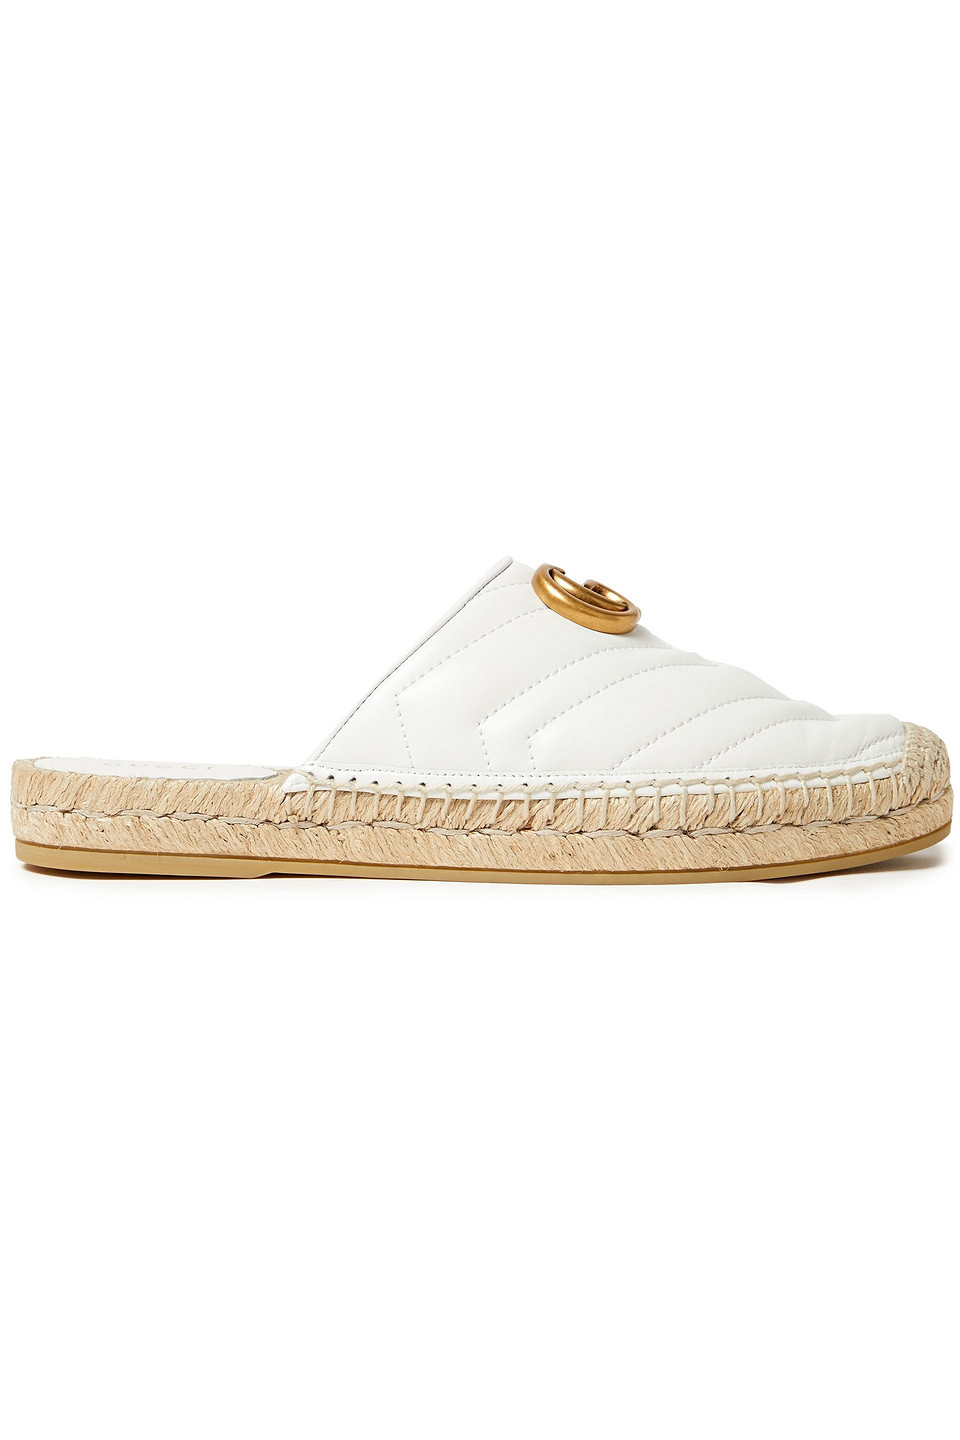 GUCCI | Gucci Woman Pilar Elaphe-trimmed Quilted Raffia Espadrille Slippers White | Clouty